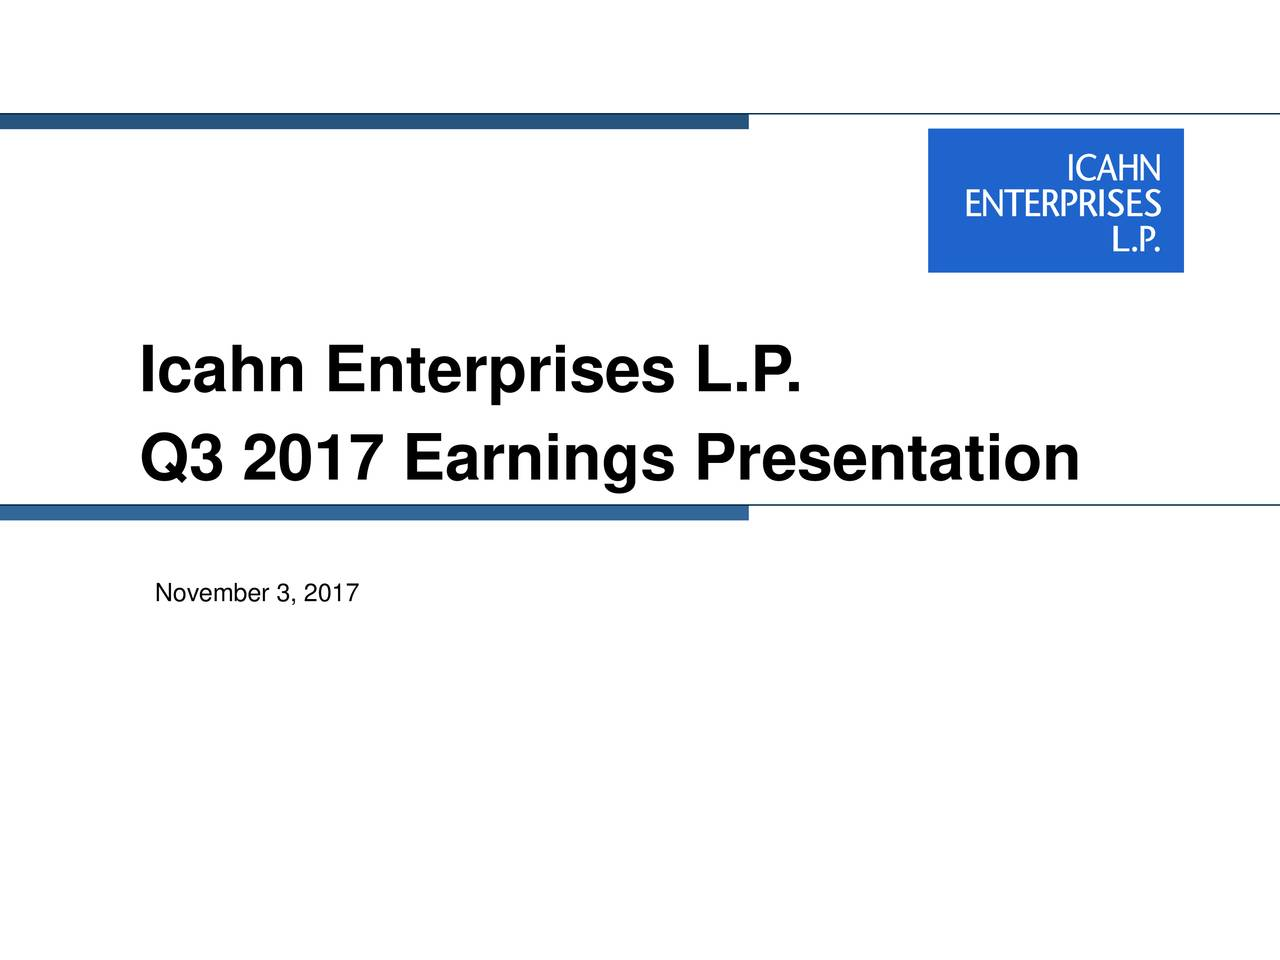 Q3 2017 Earnings Presentation November 3, 2017